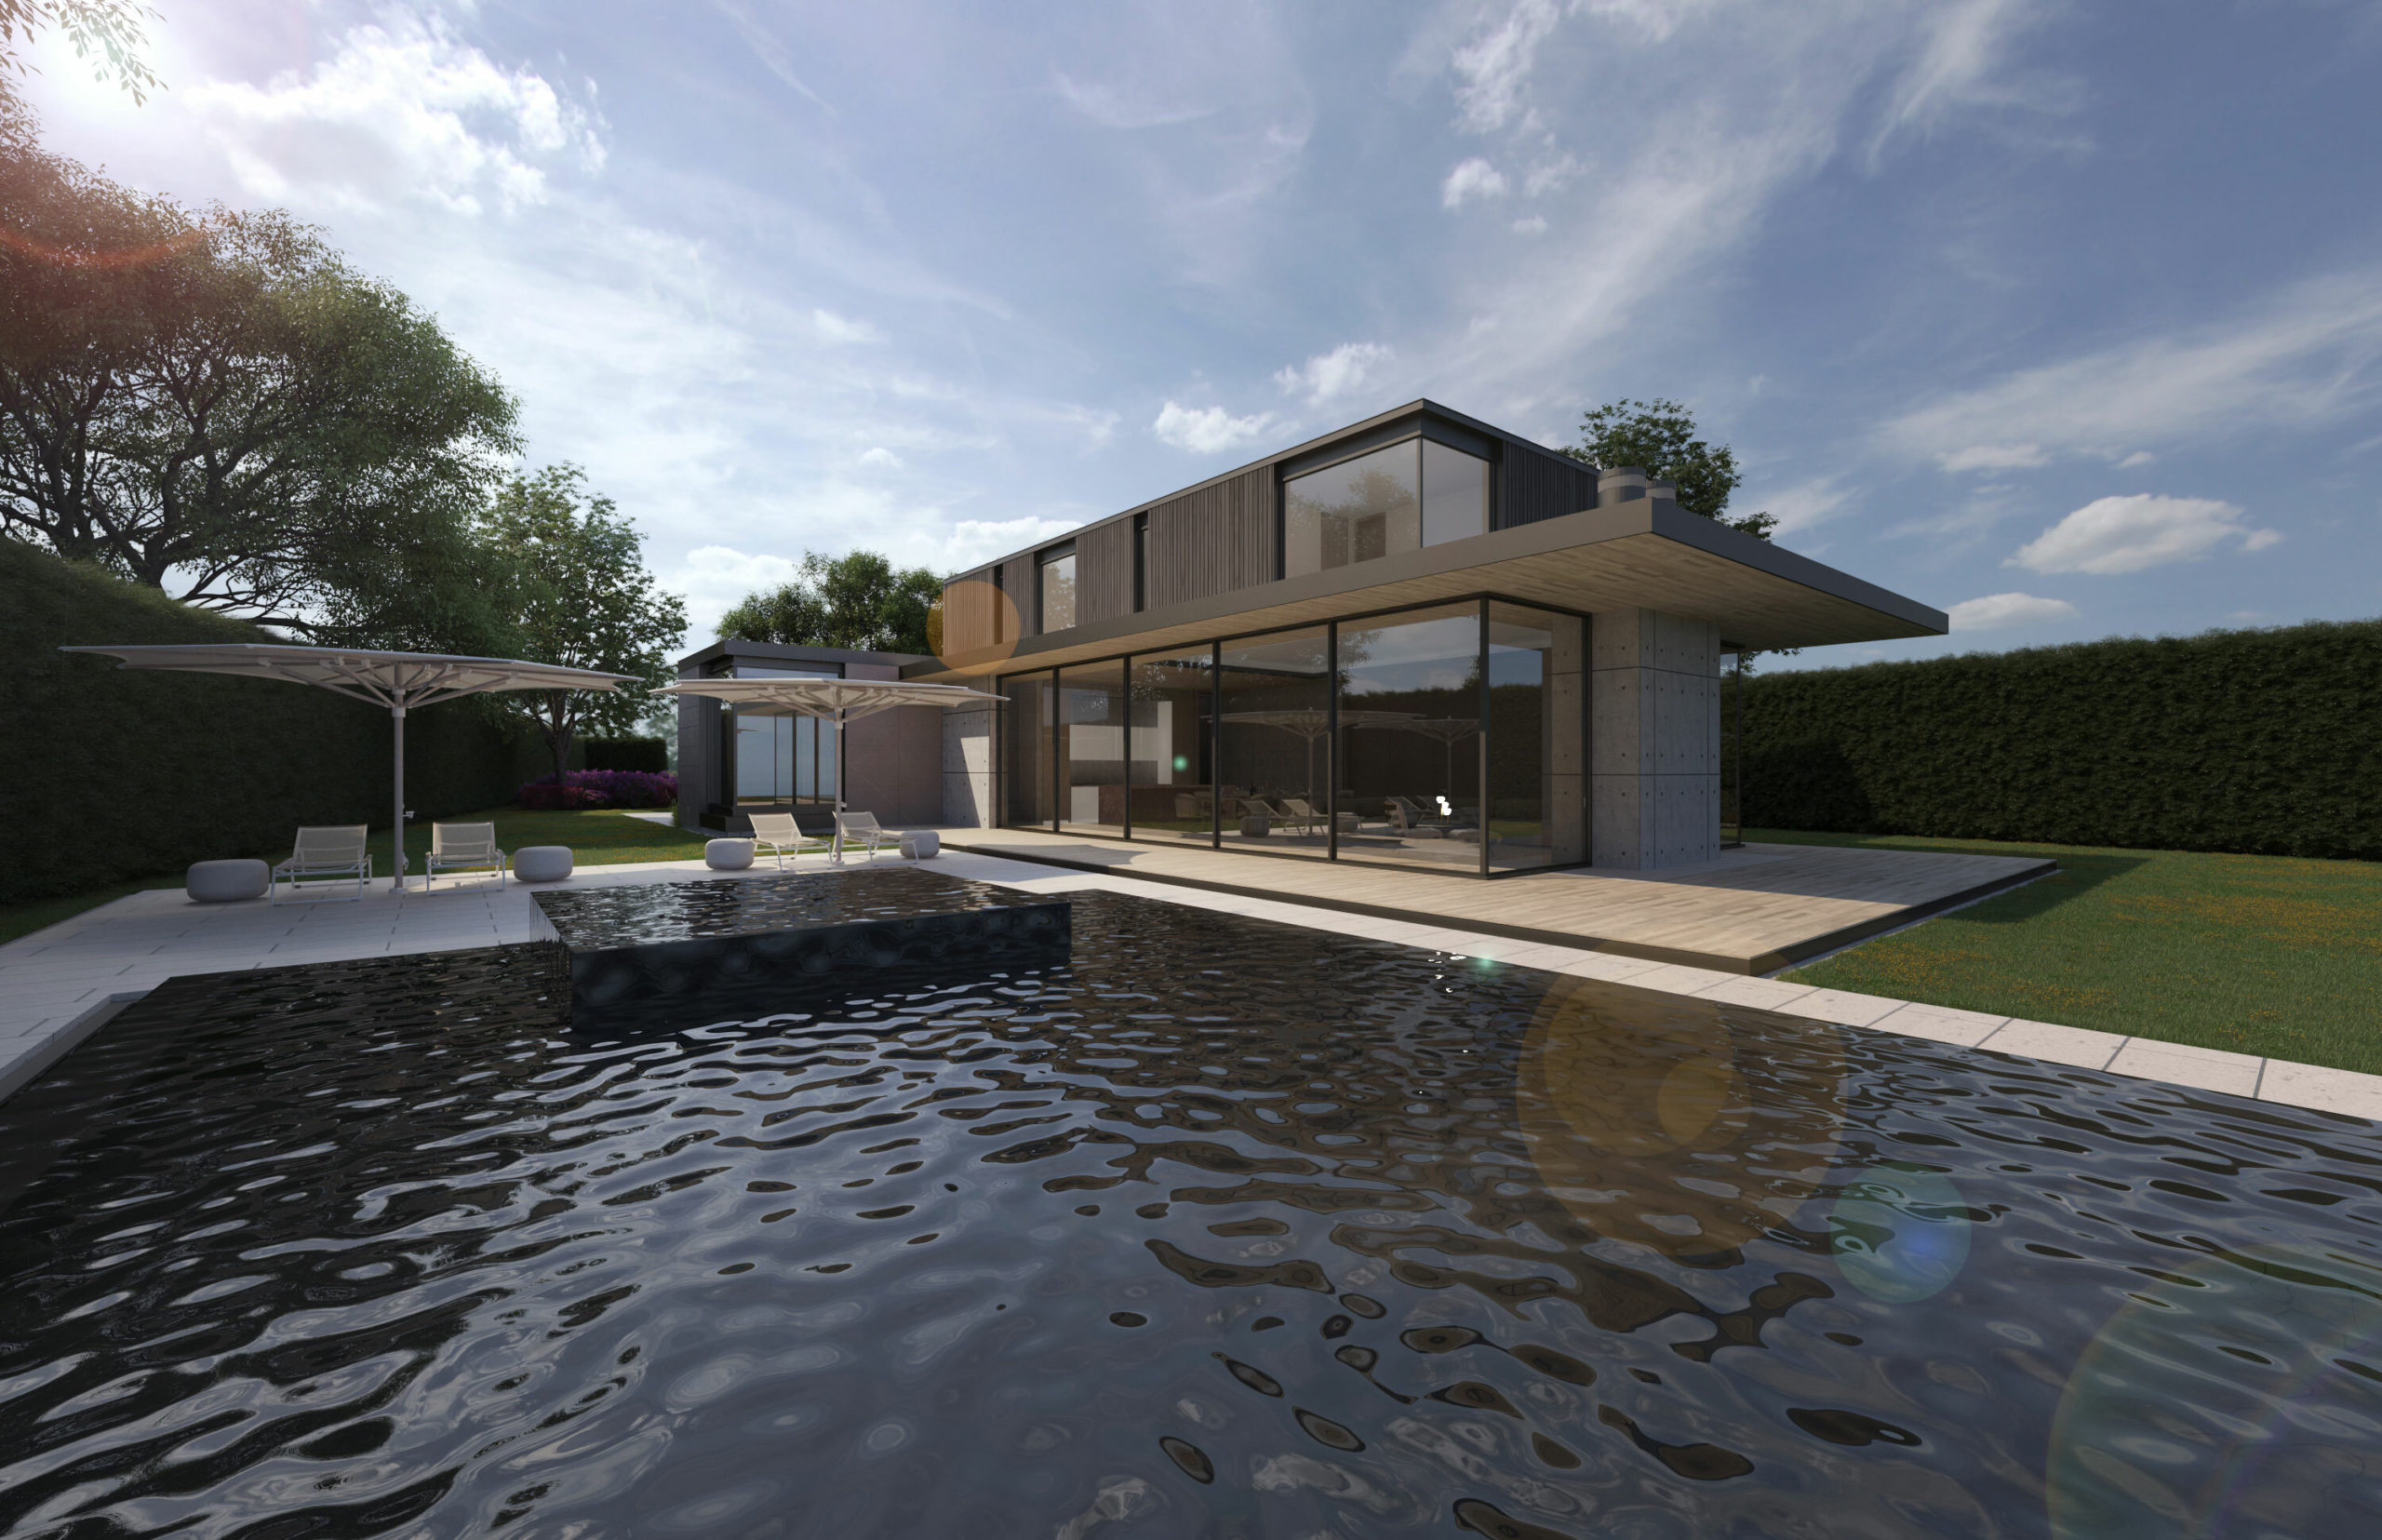 Sean Madigan earned a Merit Award for his design Amagansett House in the emerging architects category.